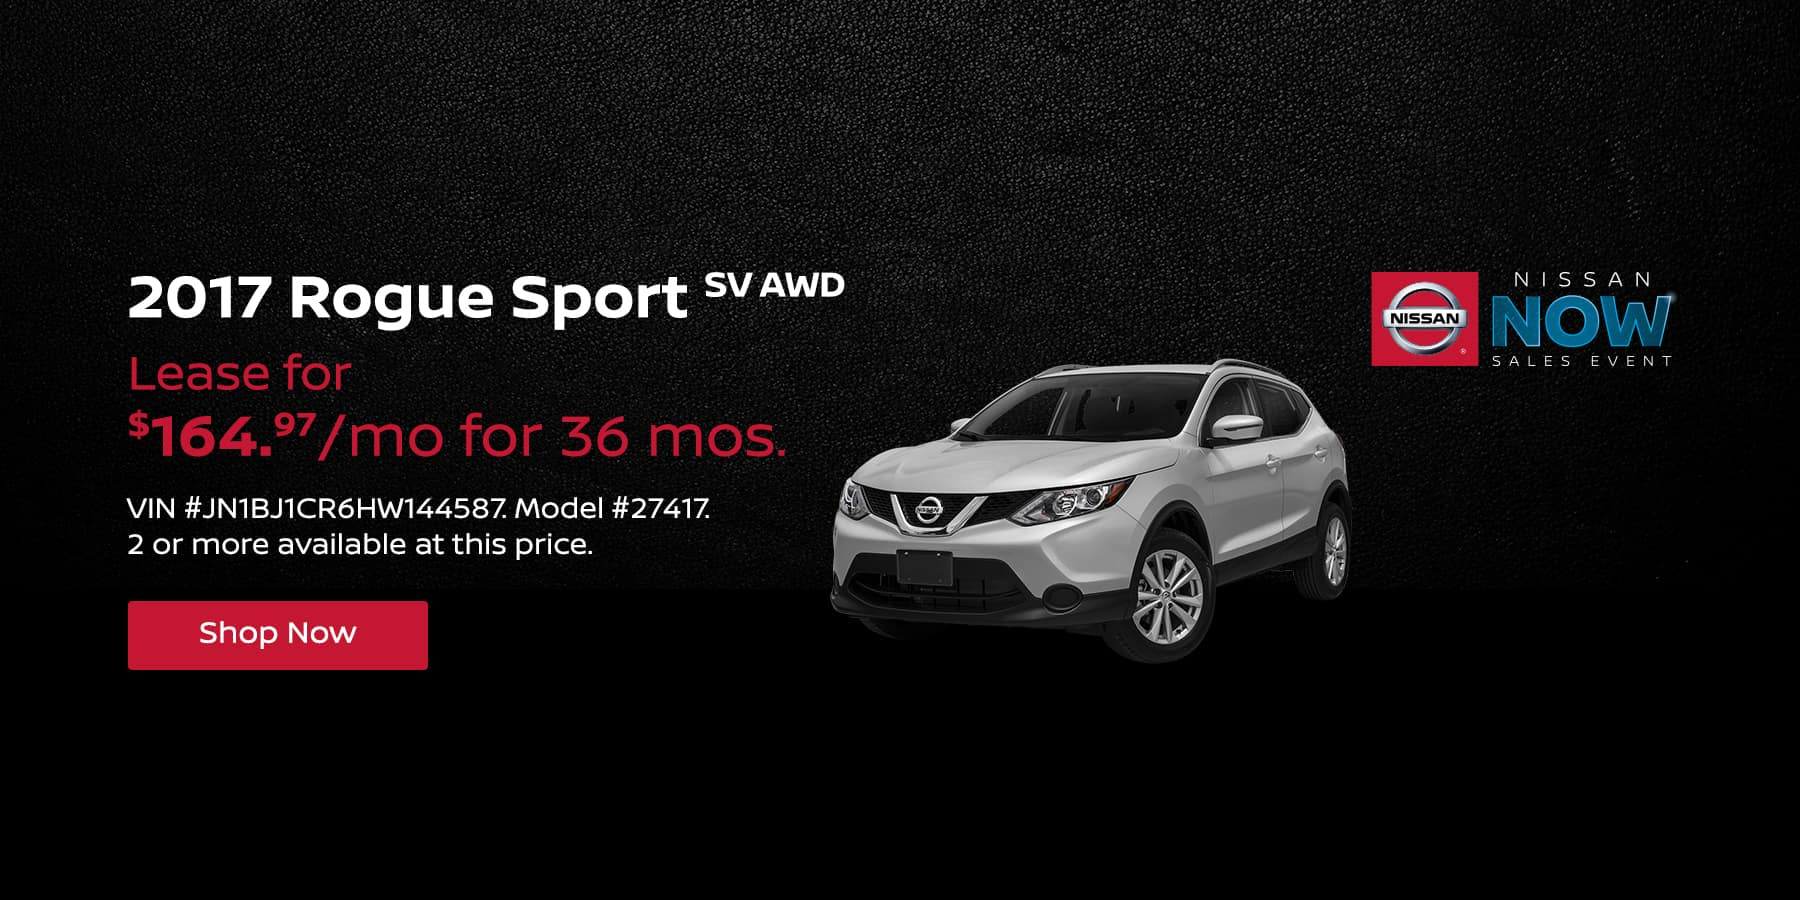 2017 Rogue Sport February Offer